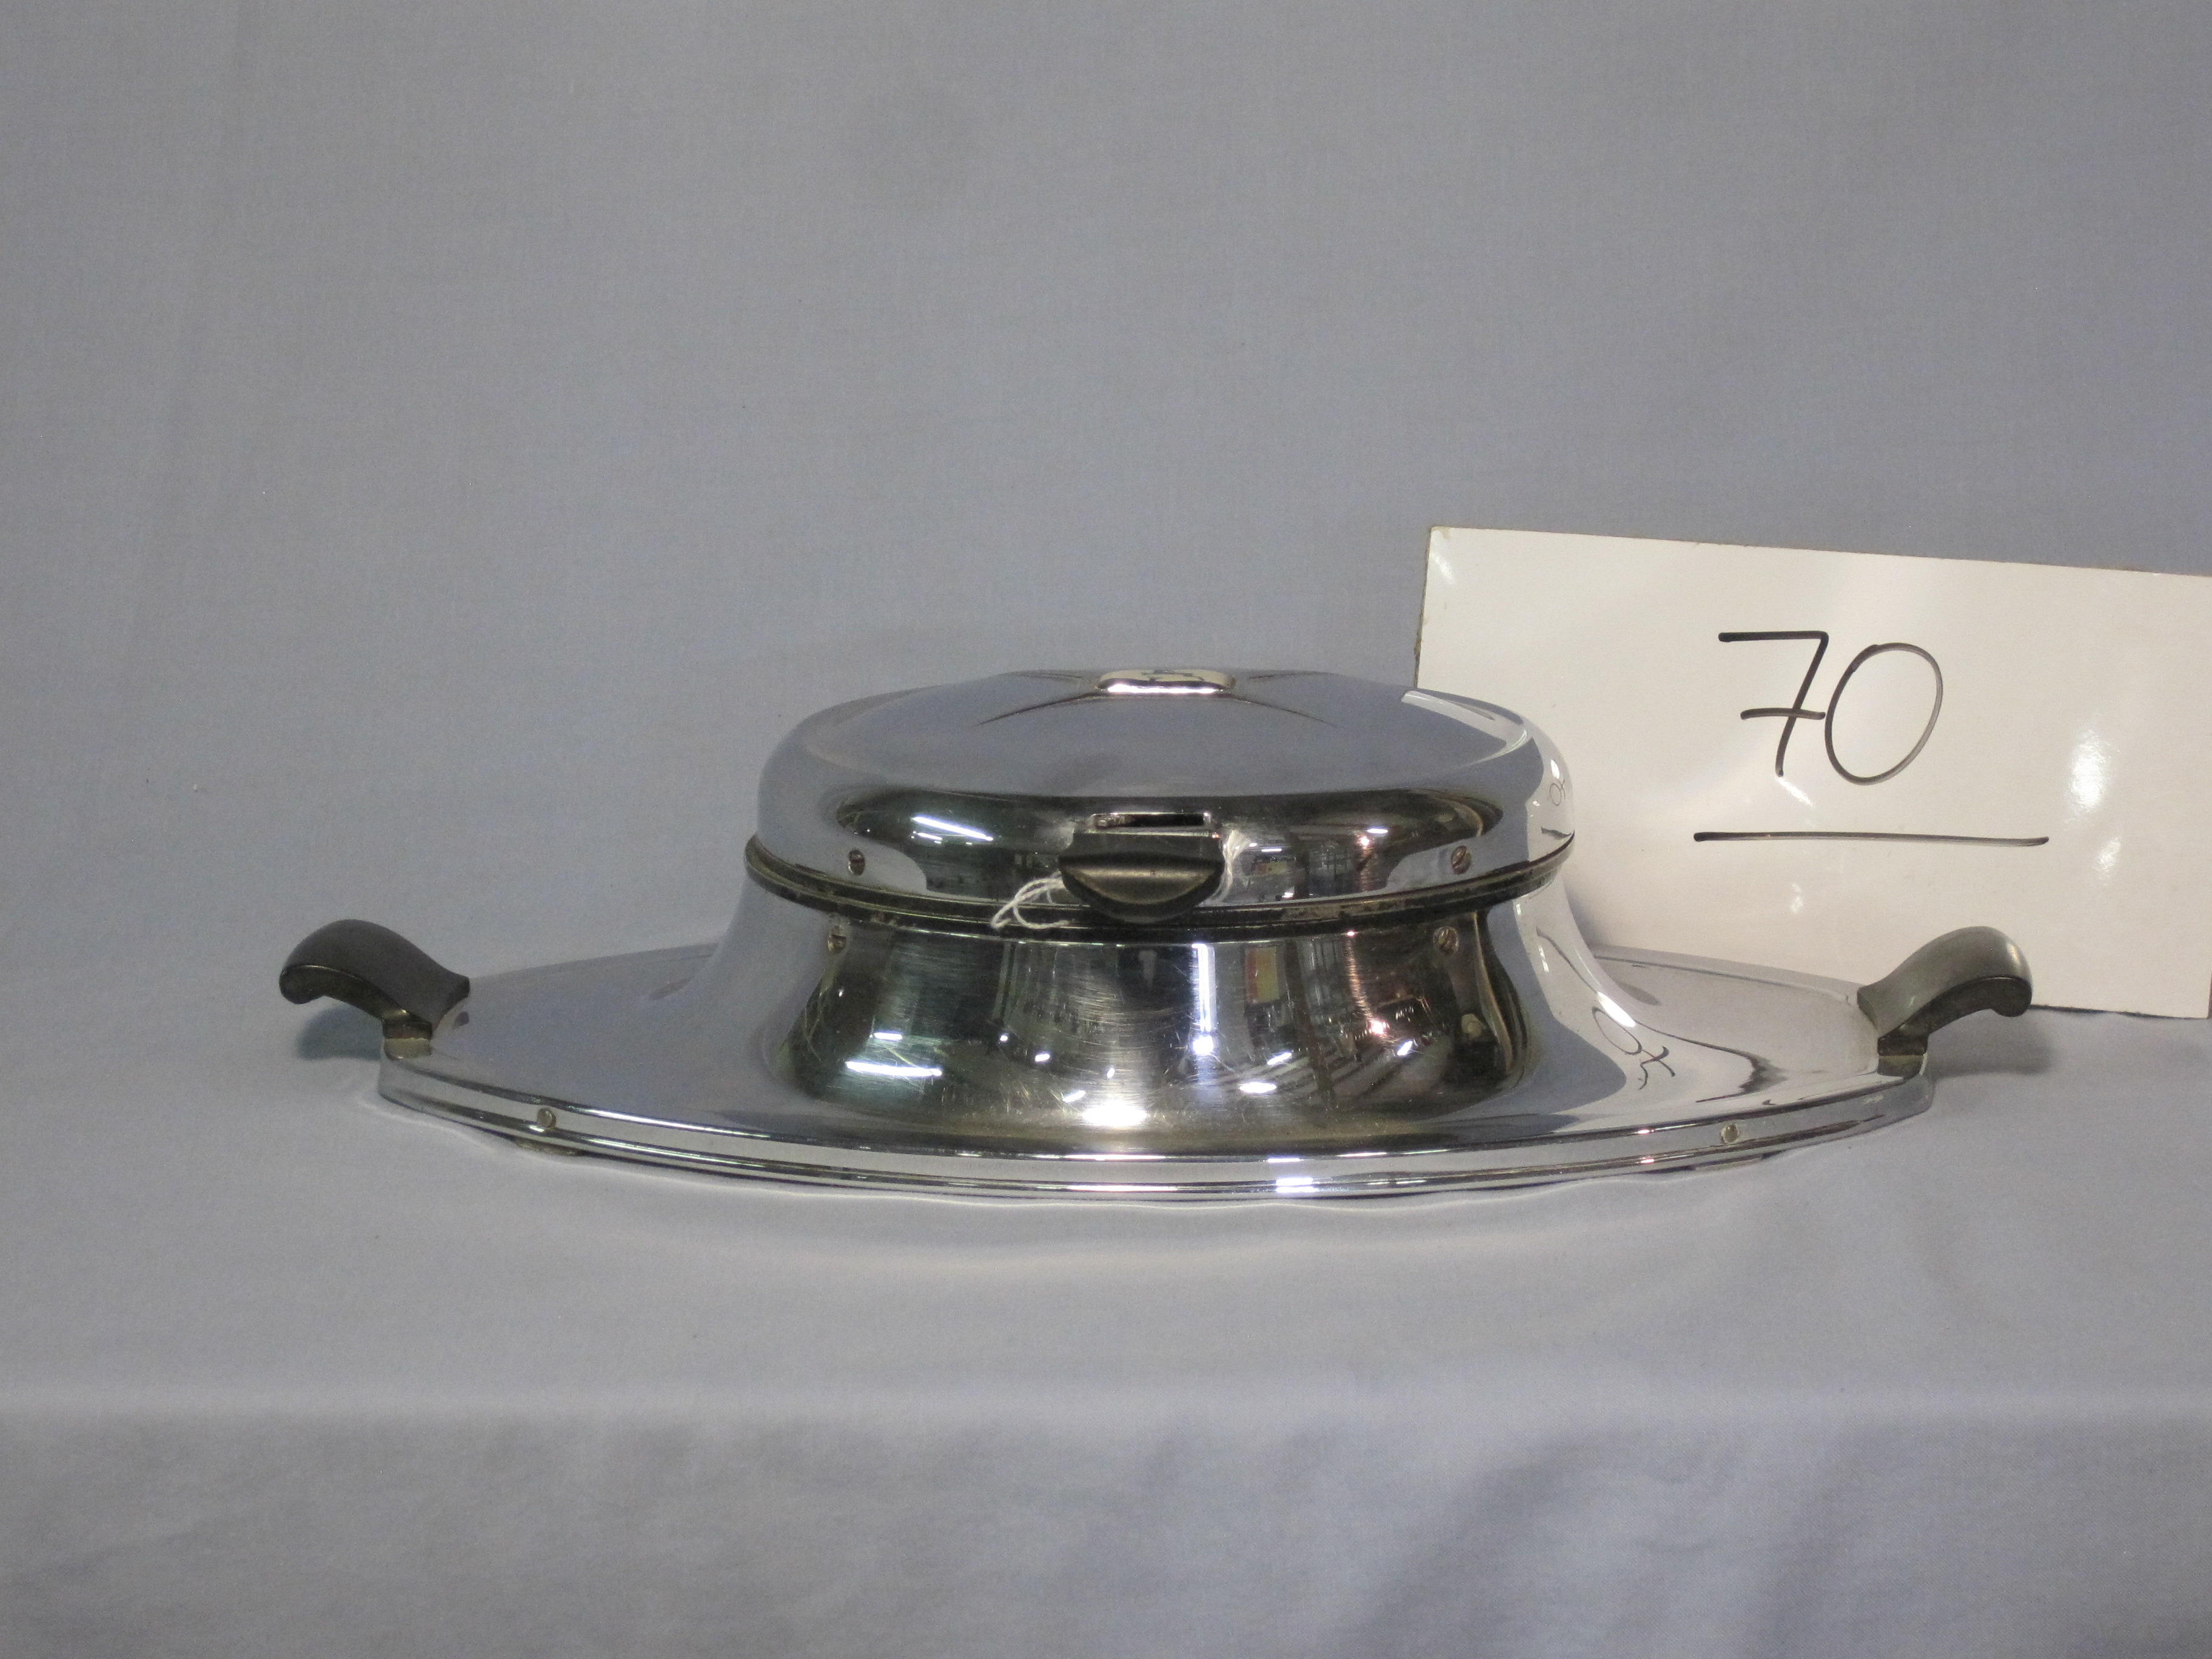 Coleman electric waffle iron #17